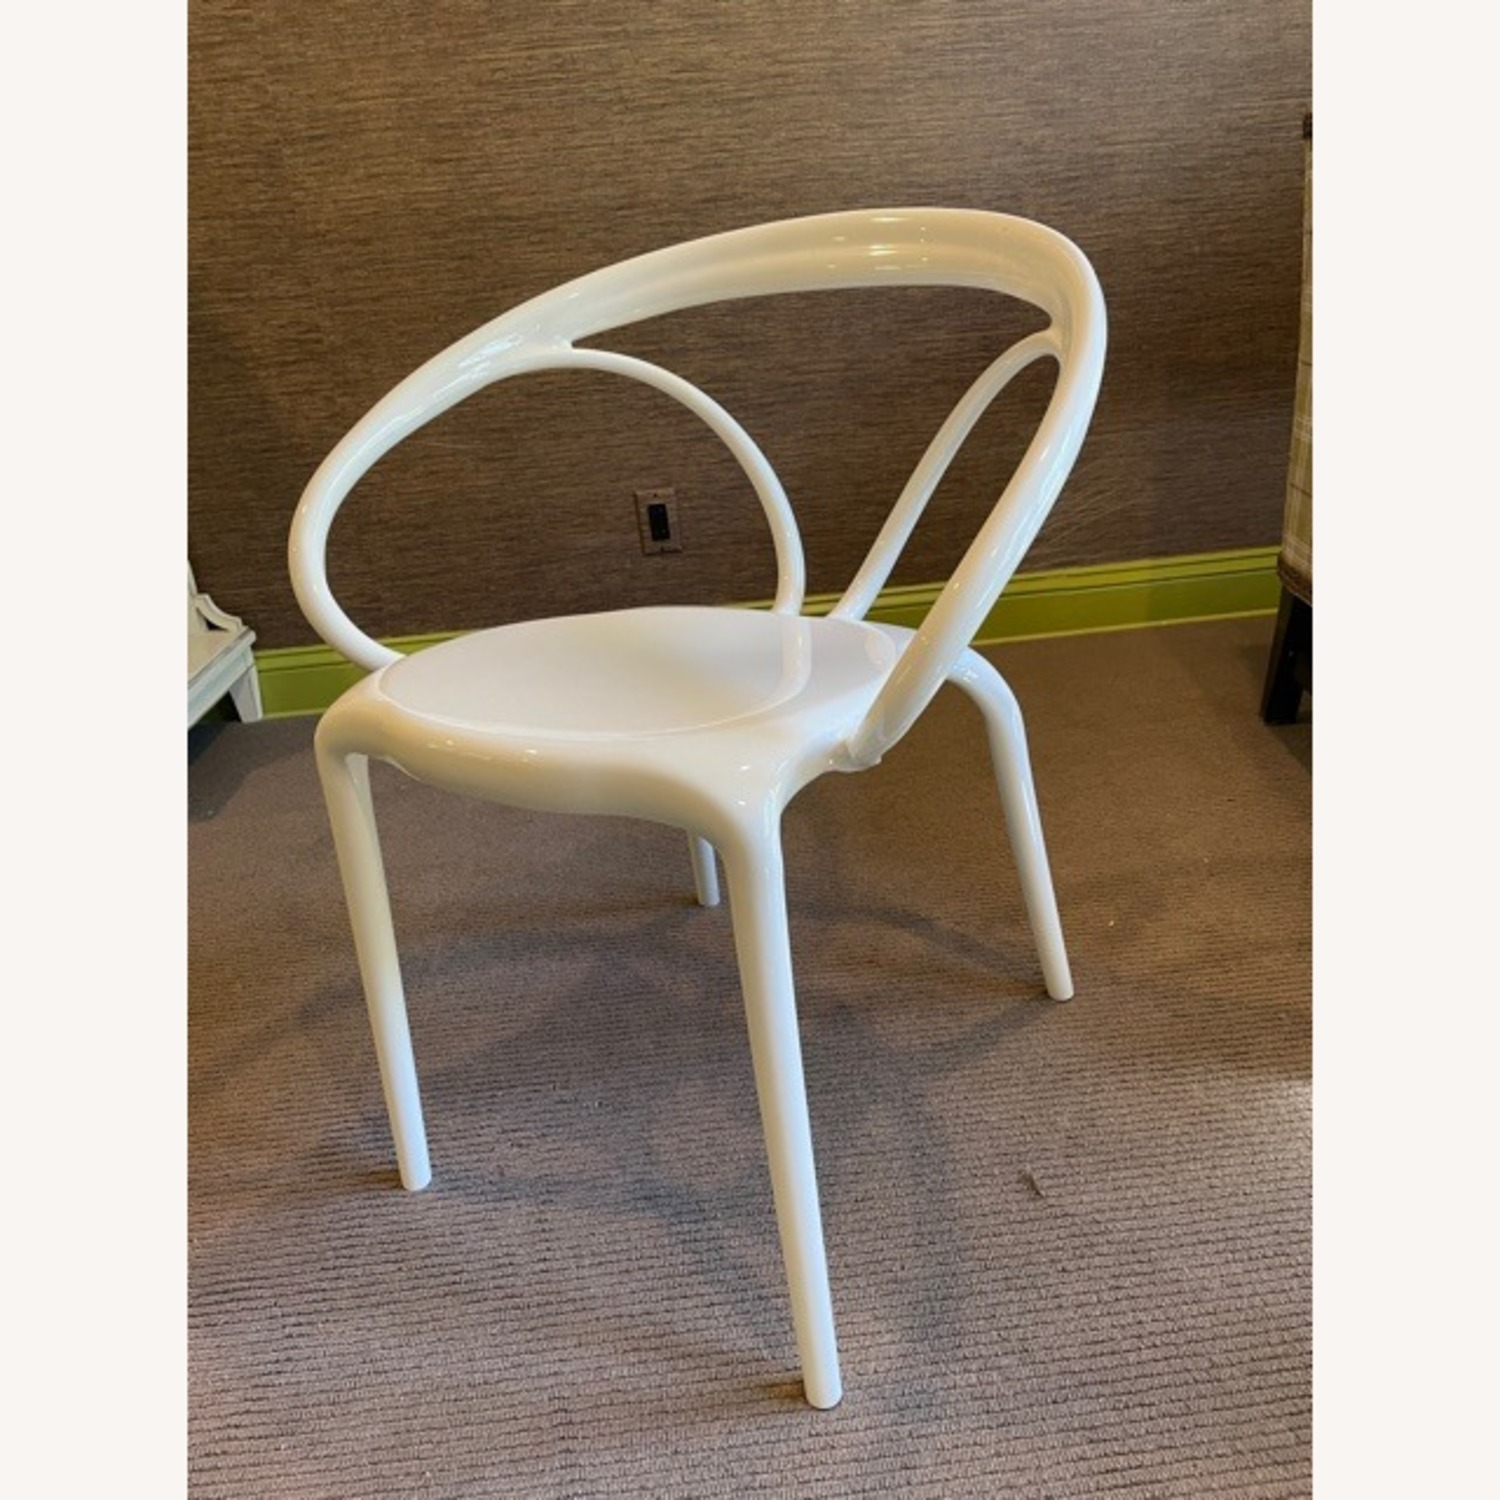 Wayfair Molded White Plastic Accent Chair - image-2